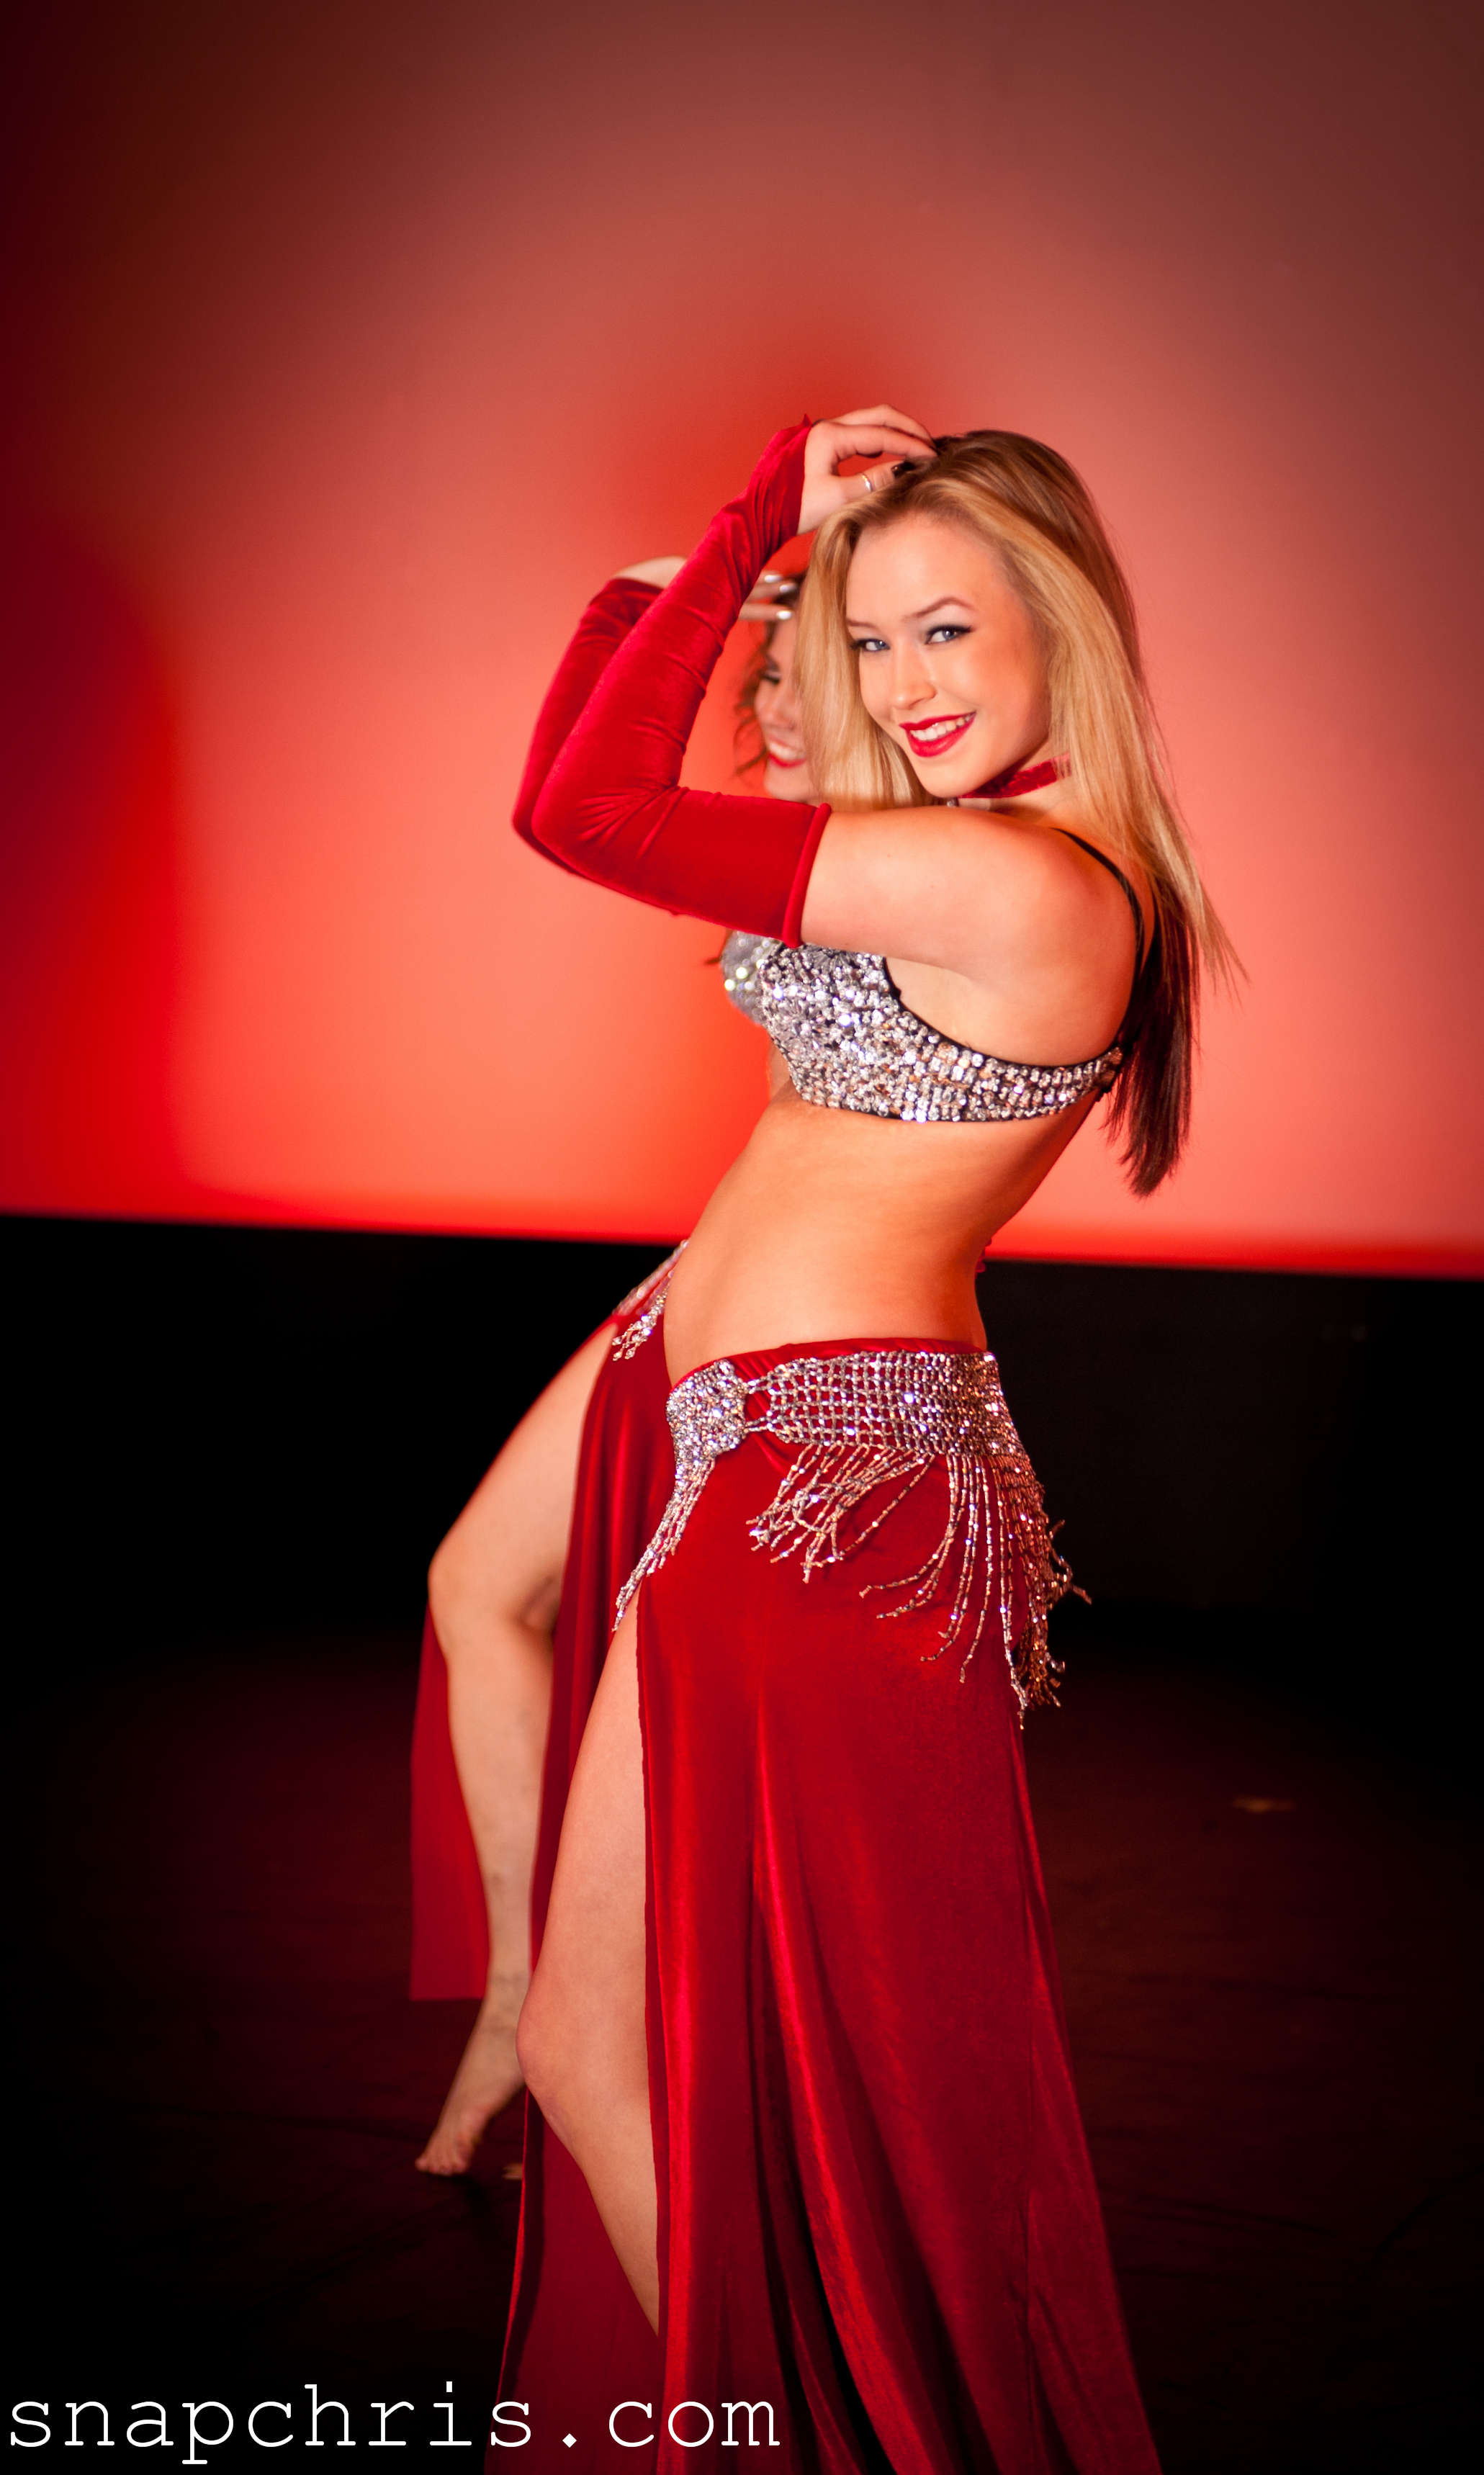 file:belly dancer girl - wikimedia commons